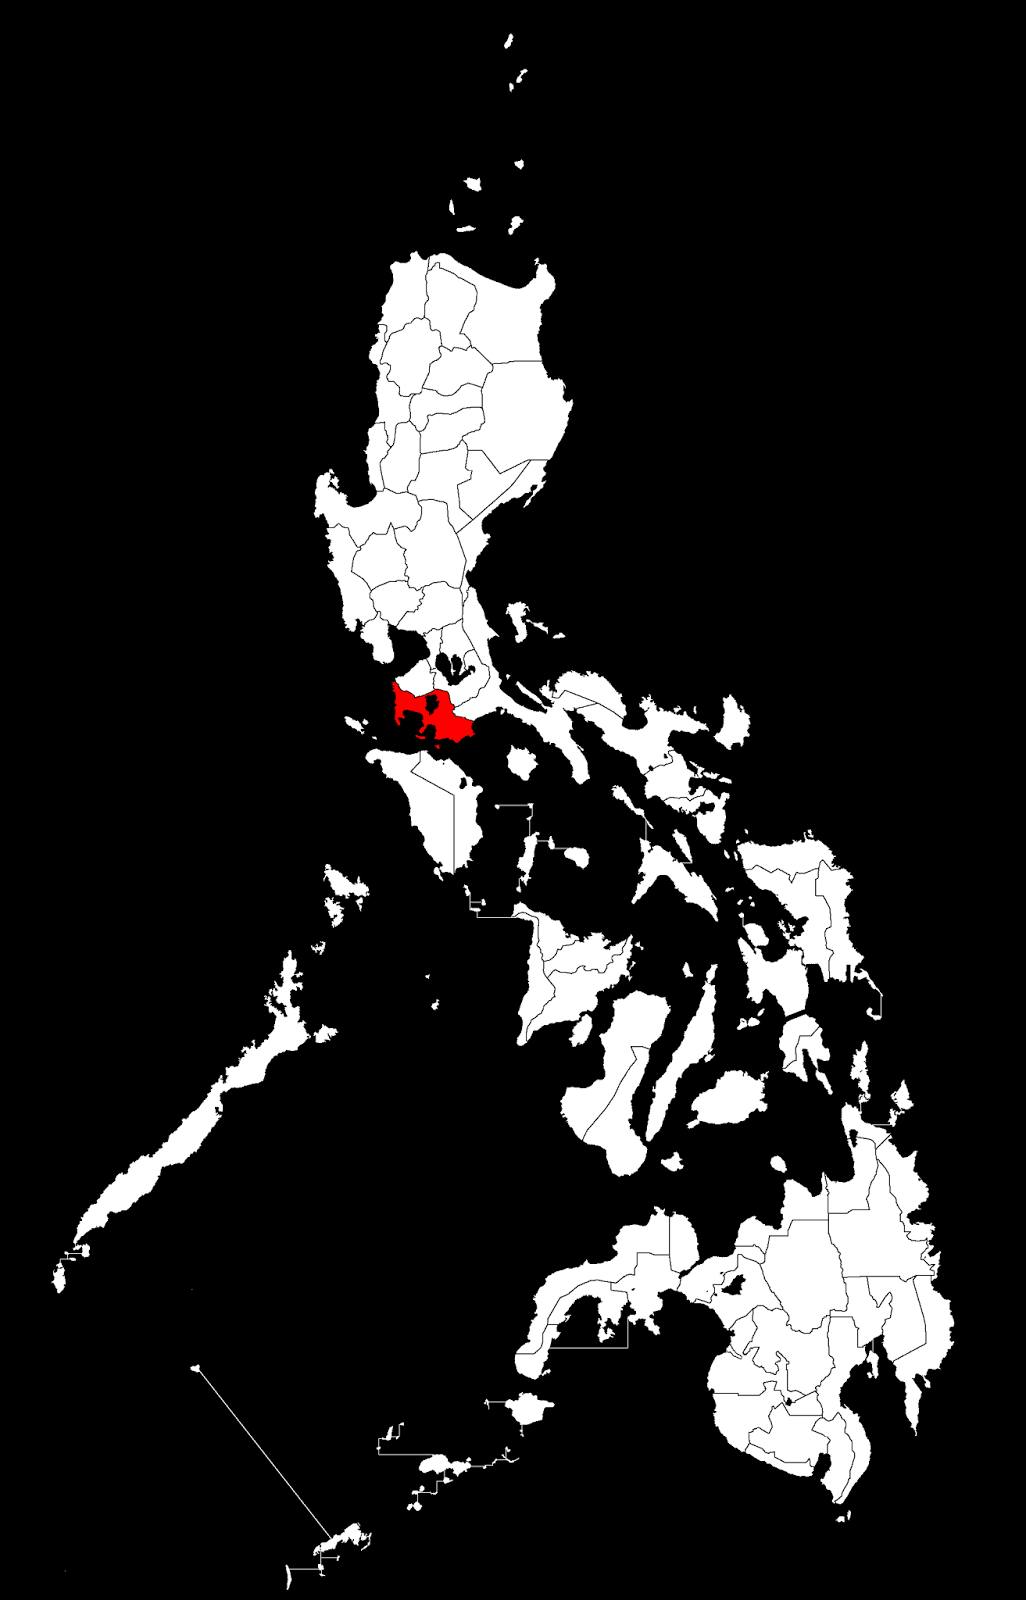 http://upload.wikimedia.org/wikipedia/commons/2/2a/Ph_regions_and_provinces.png